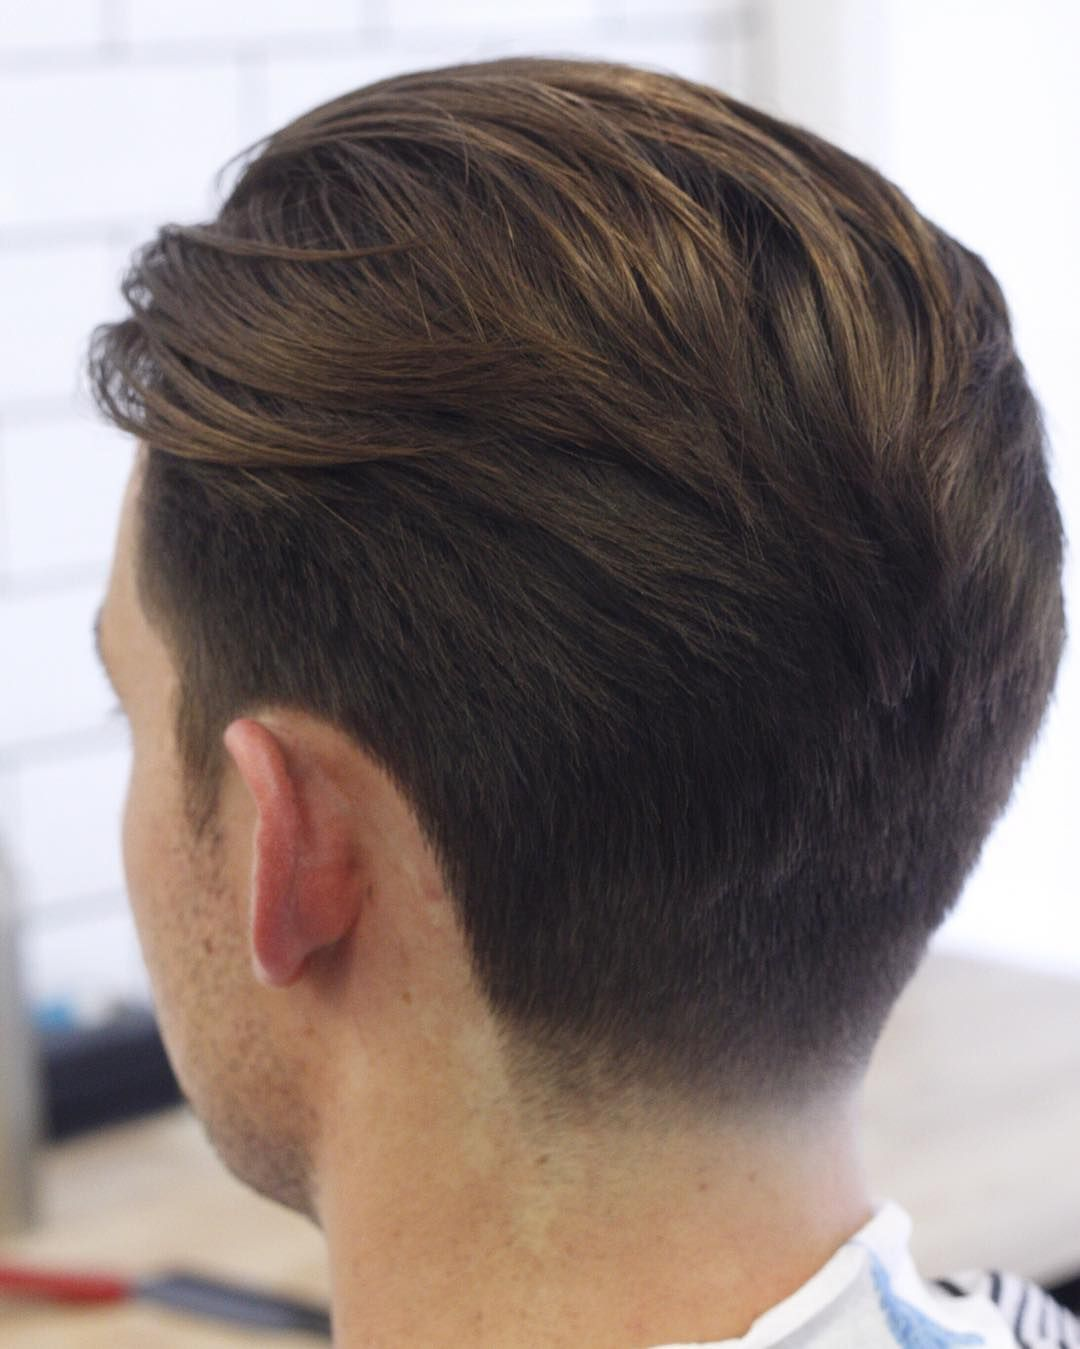 48+ Taper fade with straight hair ideas in 2021